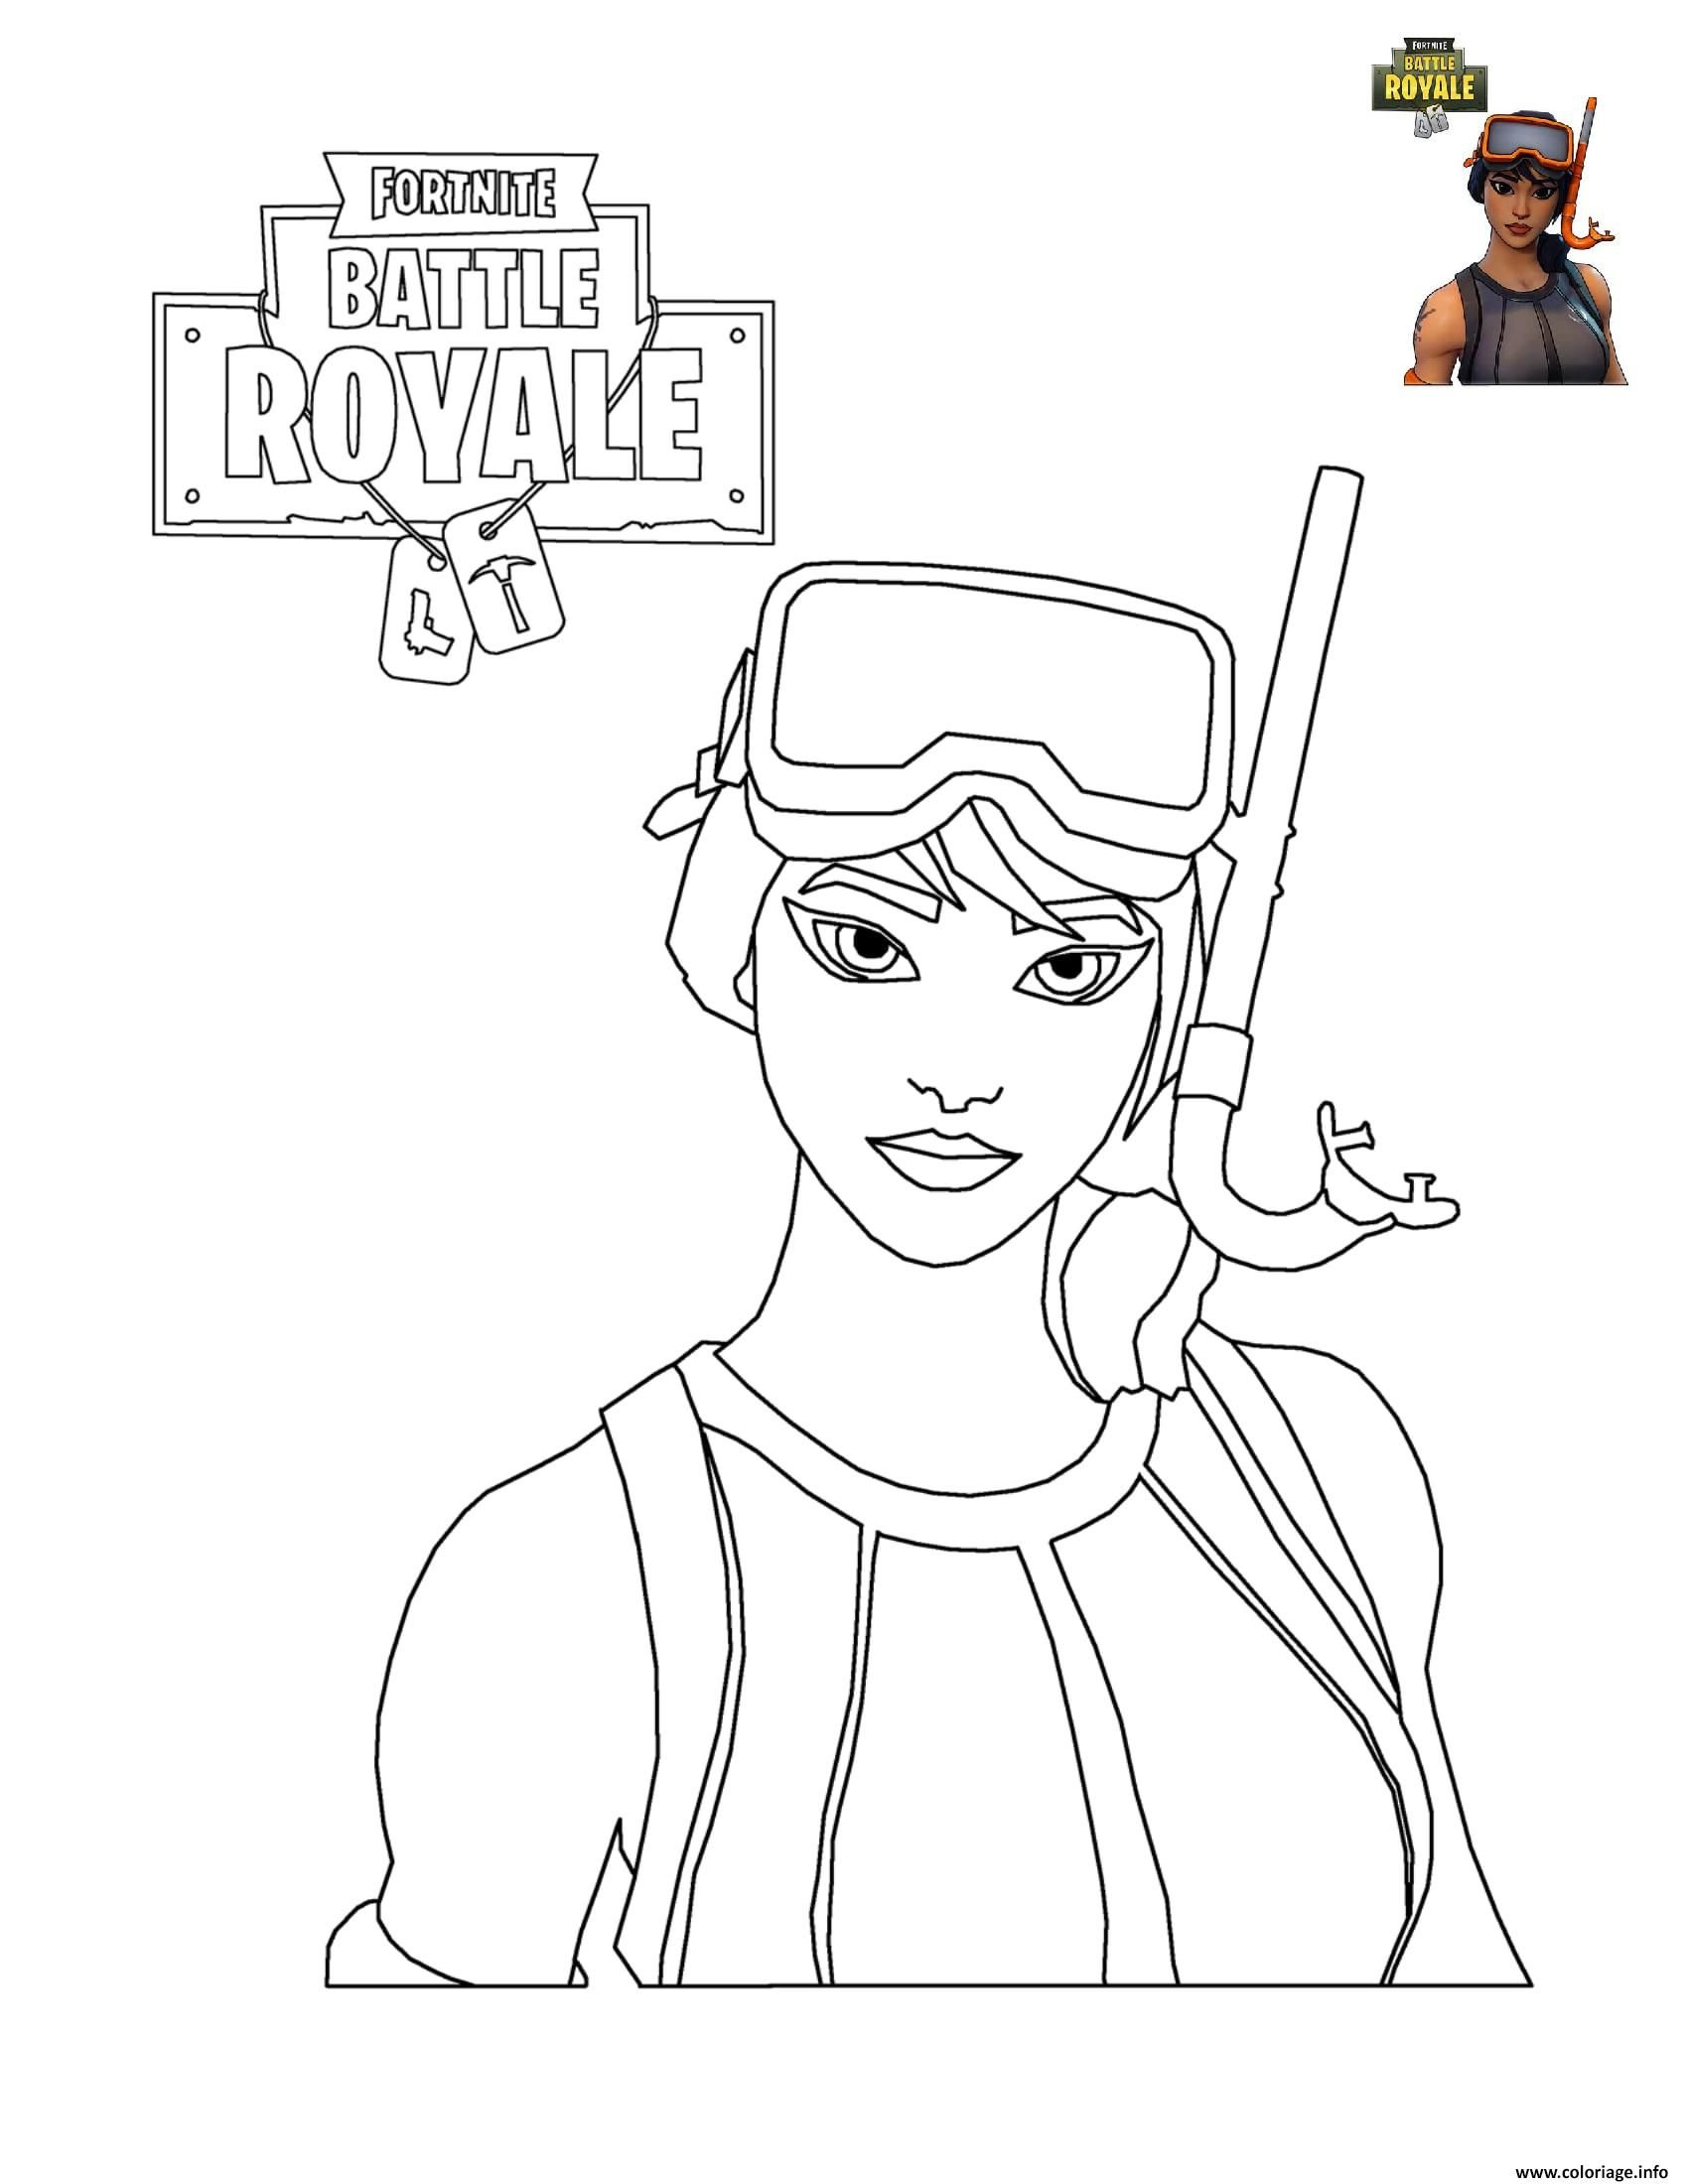 Coloriage Fortnite Battle Royale Personnage 7 à Imprimer Charlie